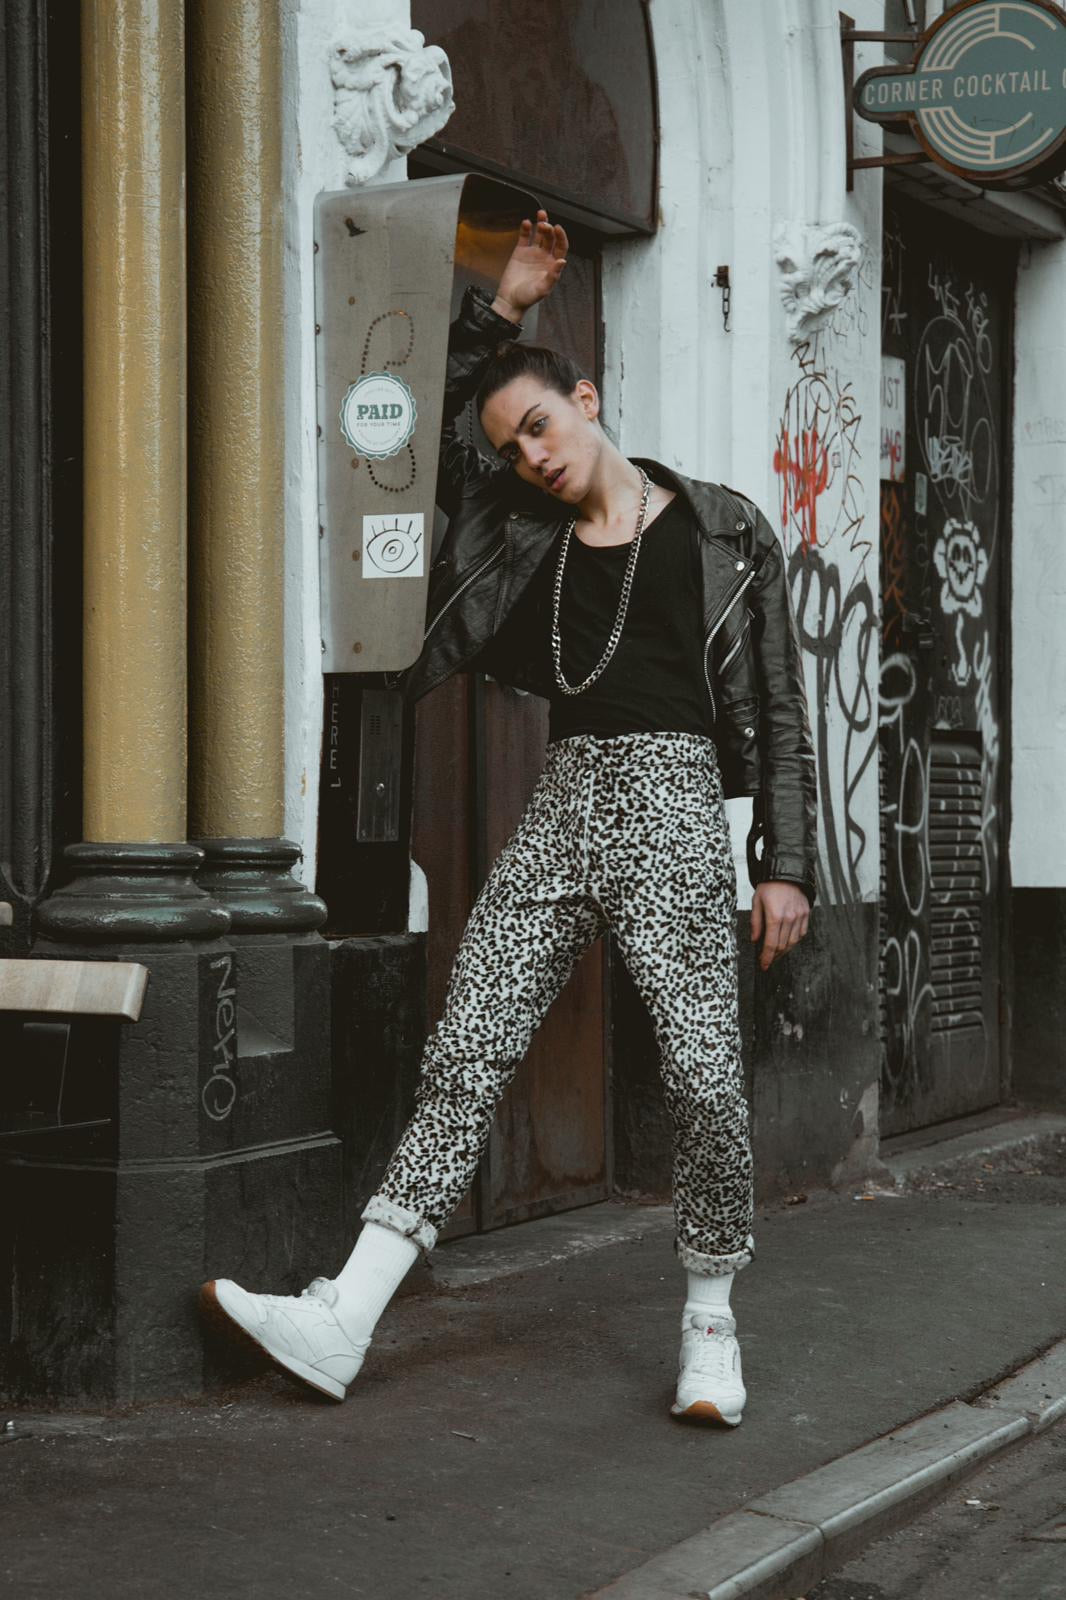 LUST FOR LIFE (Unisex, Leopard Print Trousers)